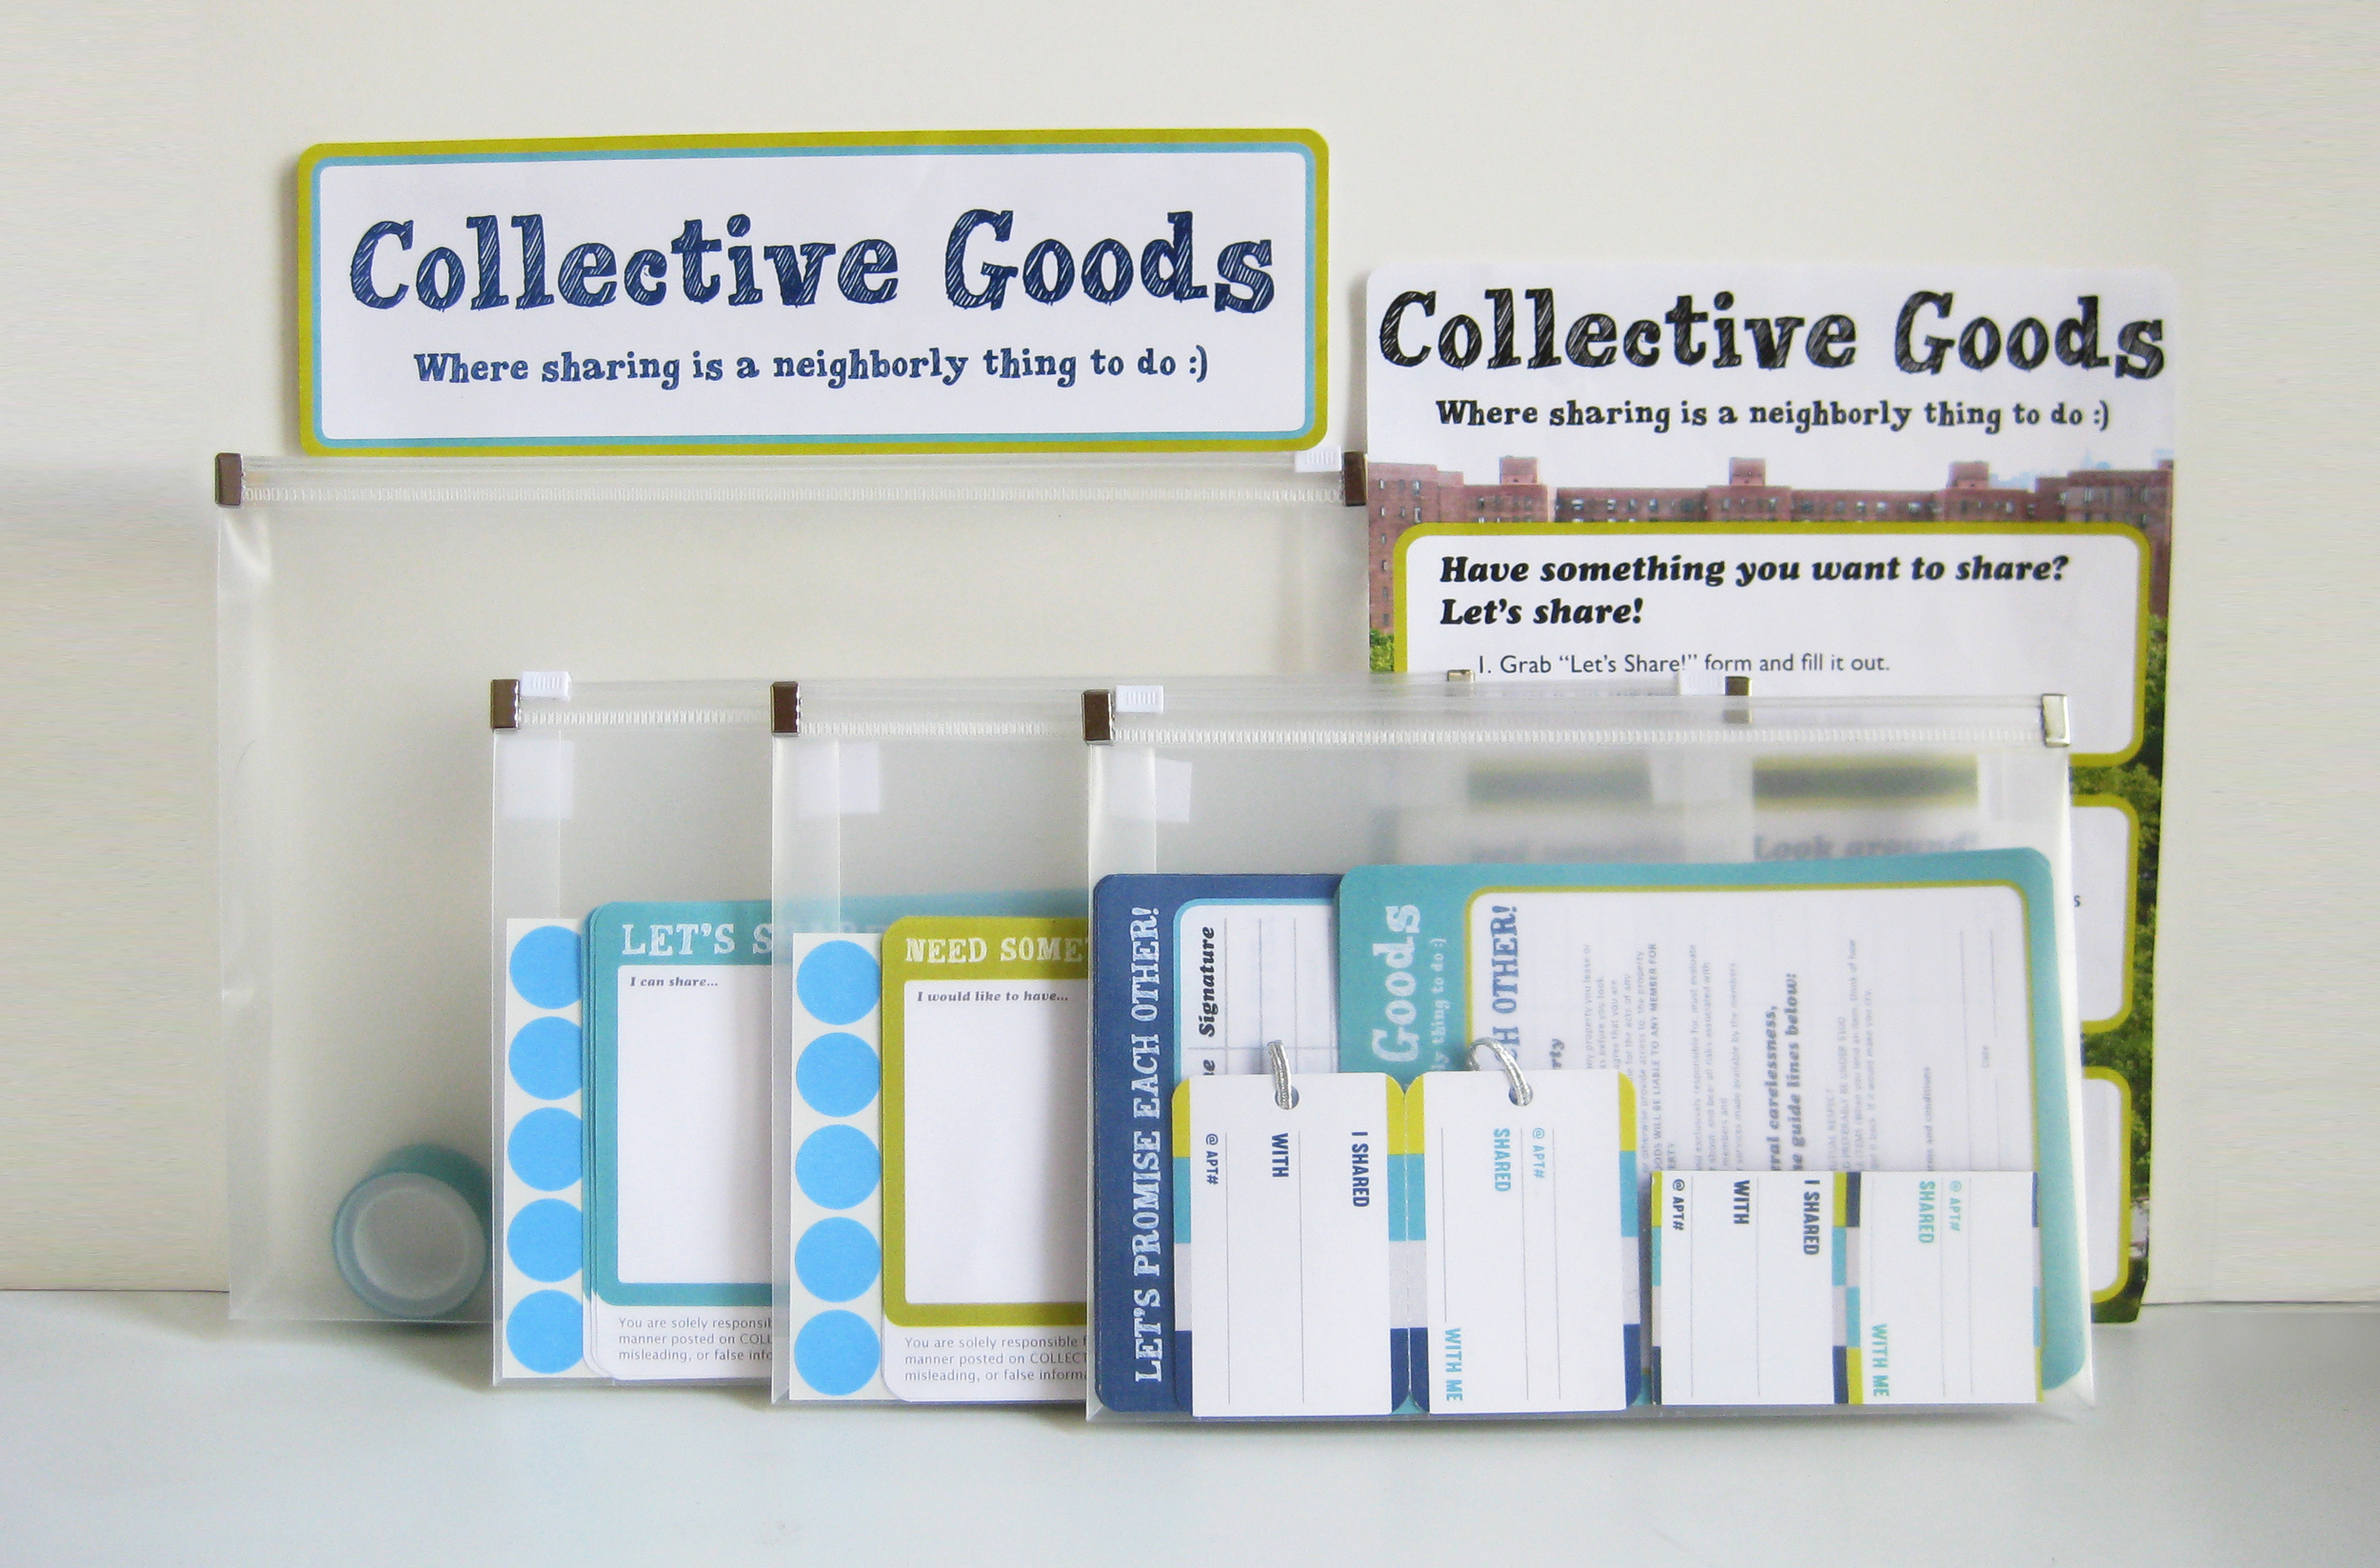 Collective Goods_2.JPG